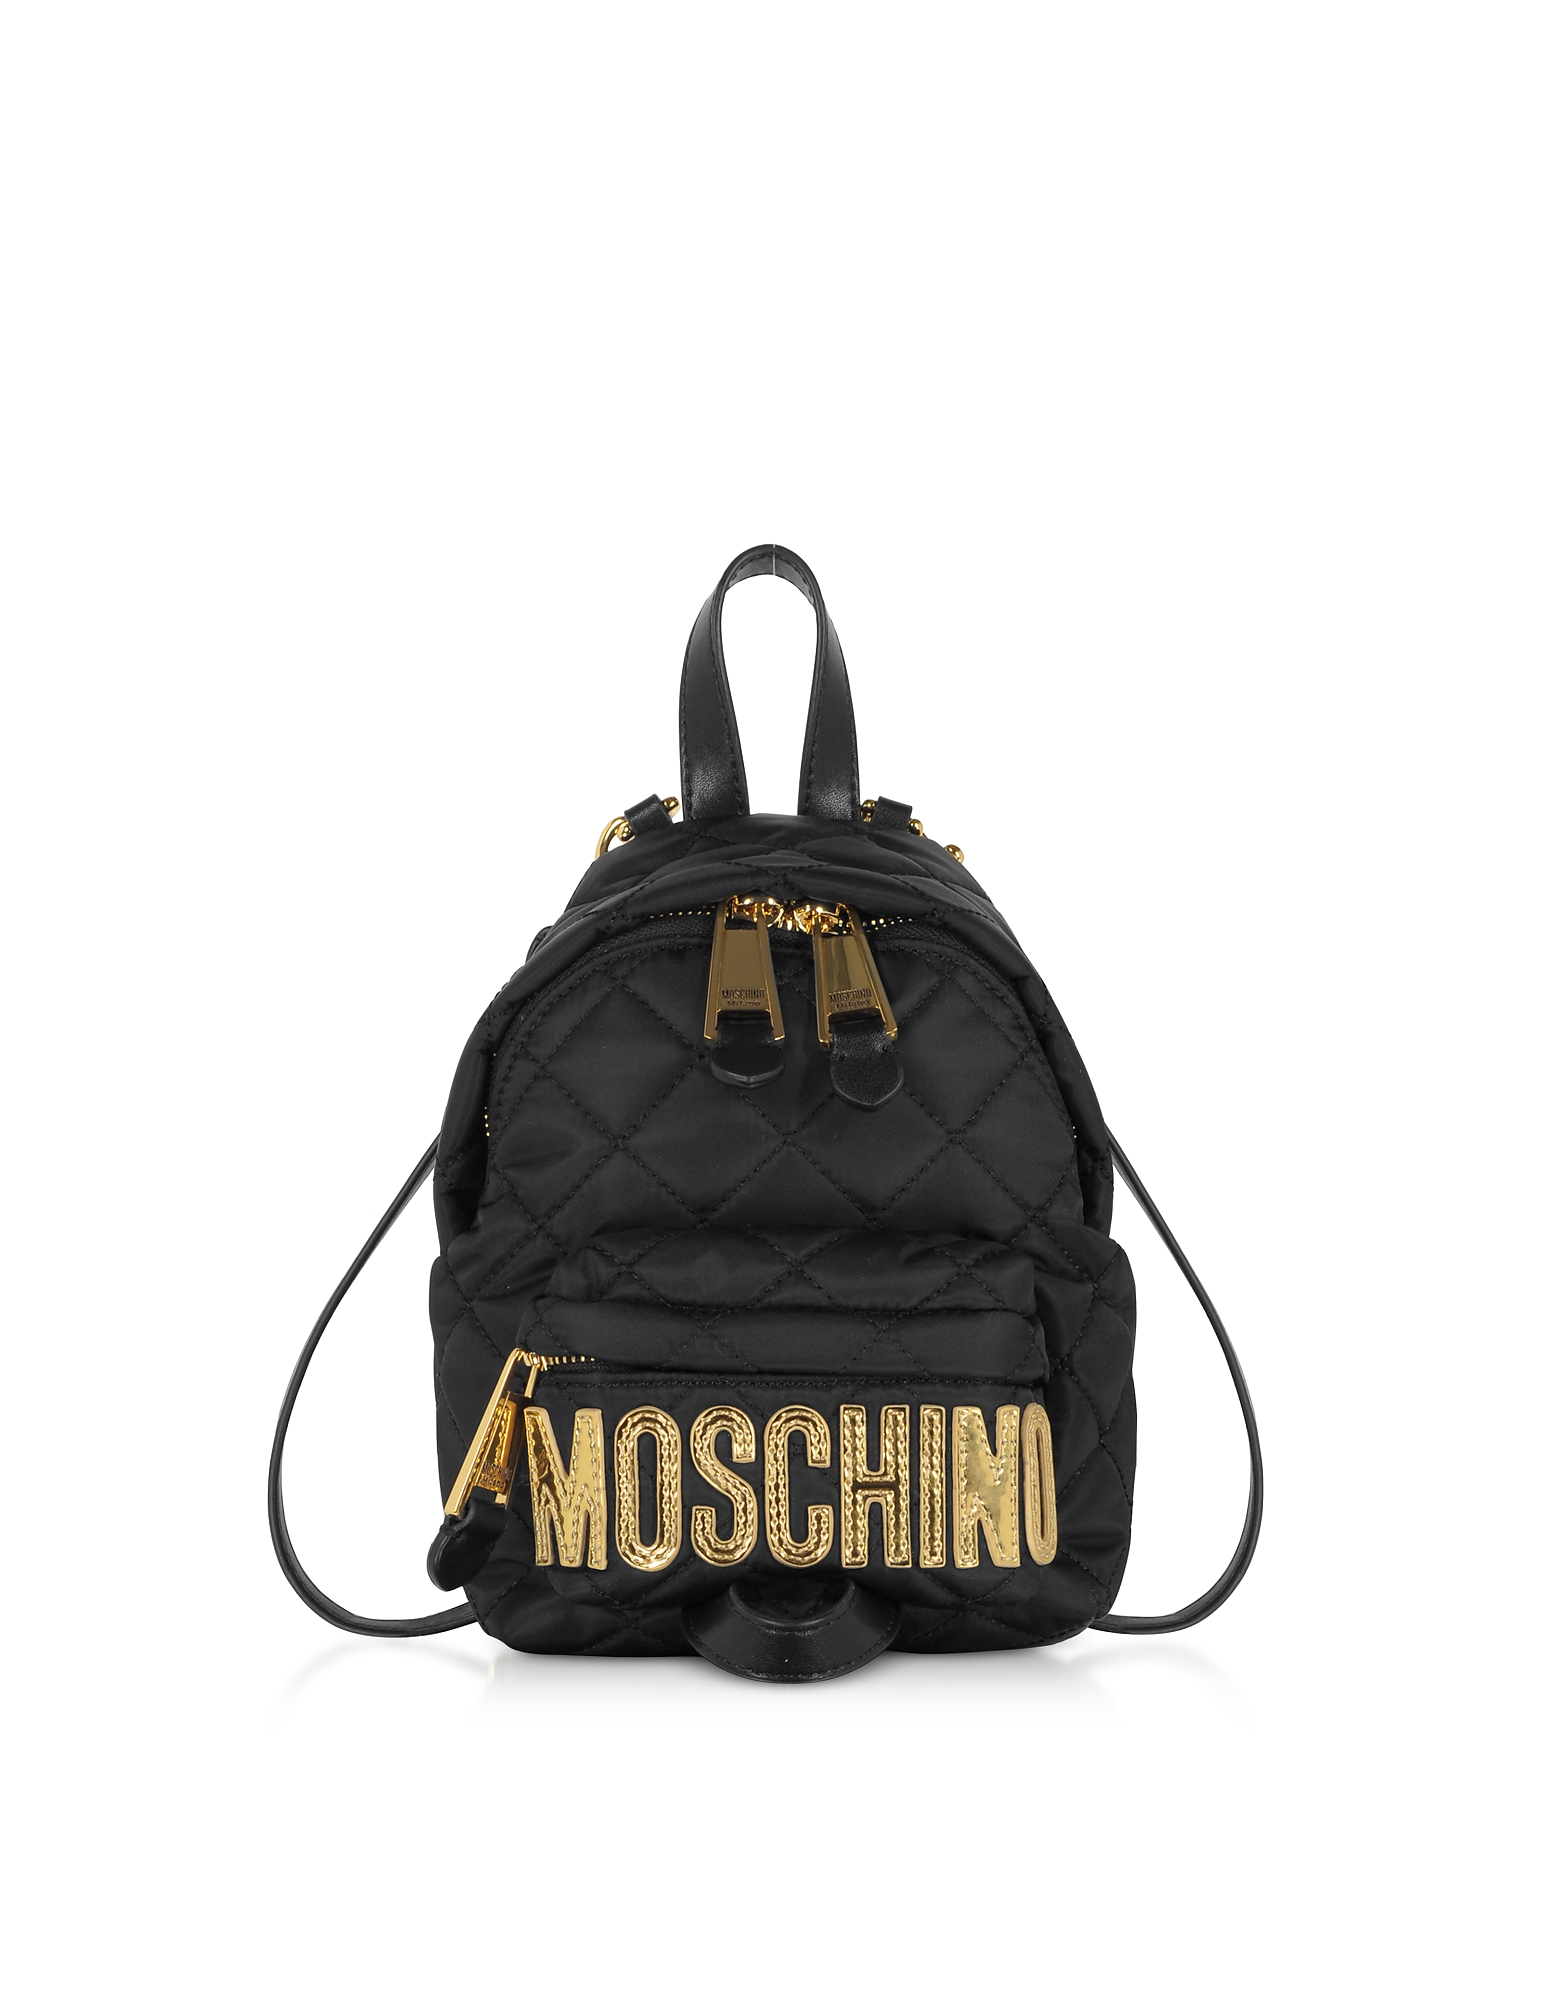 UPC 657536055648 product image for Moschino Designer Handbags, Black Quilted Nylon Signature Mini Backpack w/Gold S | upcitemdb.com